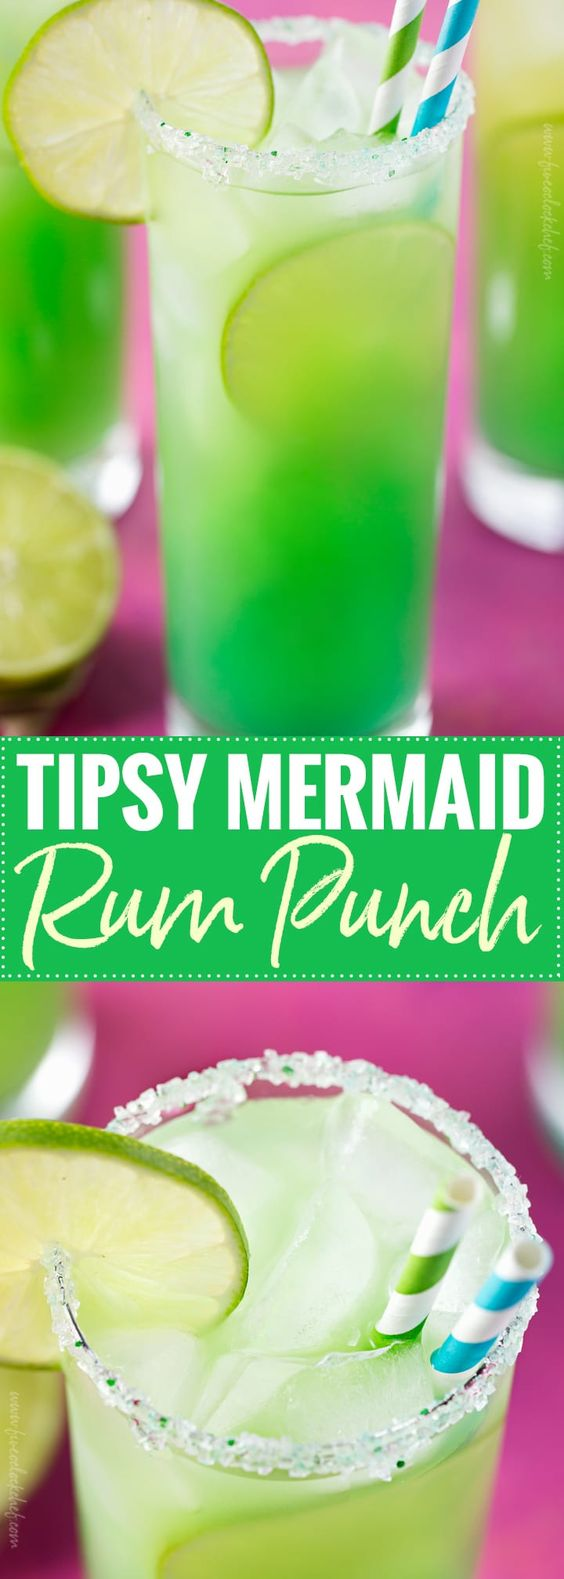 Tipsy Mermaid Rum Punch